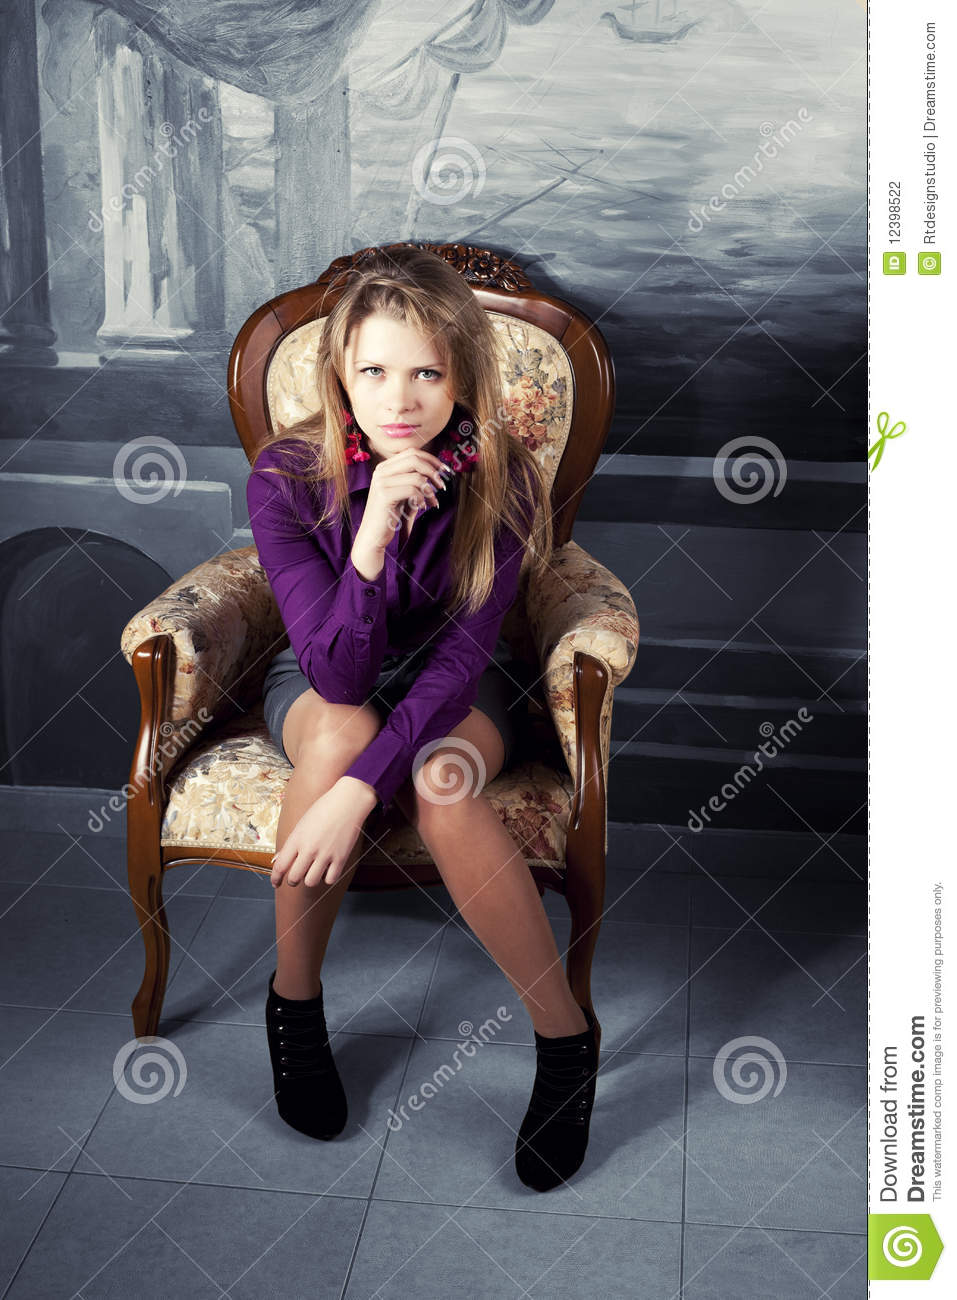 Woman sitting in armchair luxury vintage royalty free for Sitting in armchair